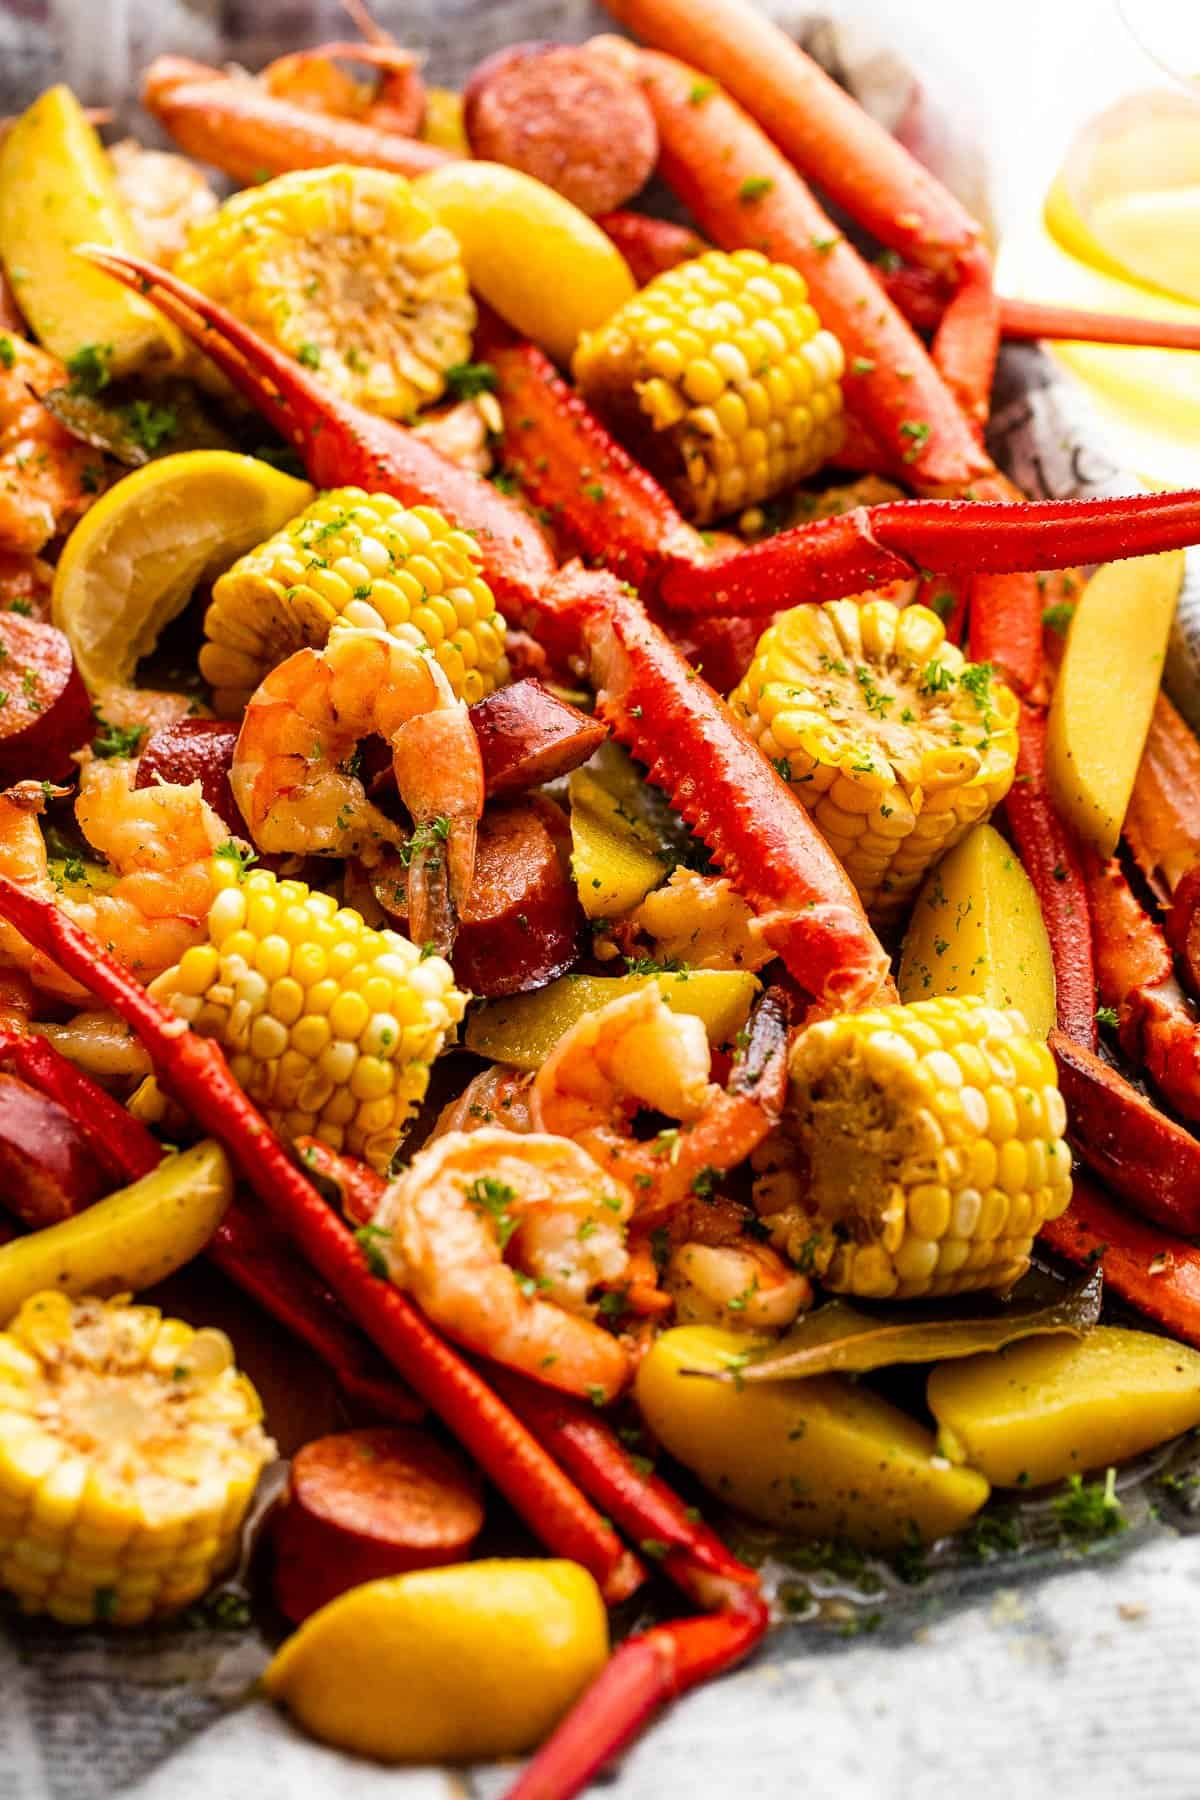 crab legs, shrimp, and corn served on a baking sheet